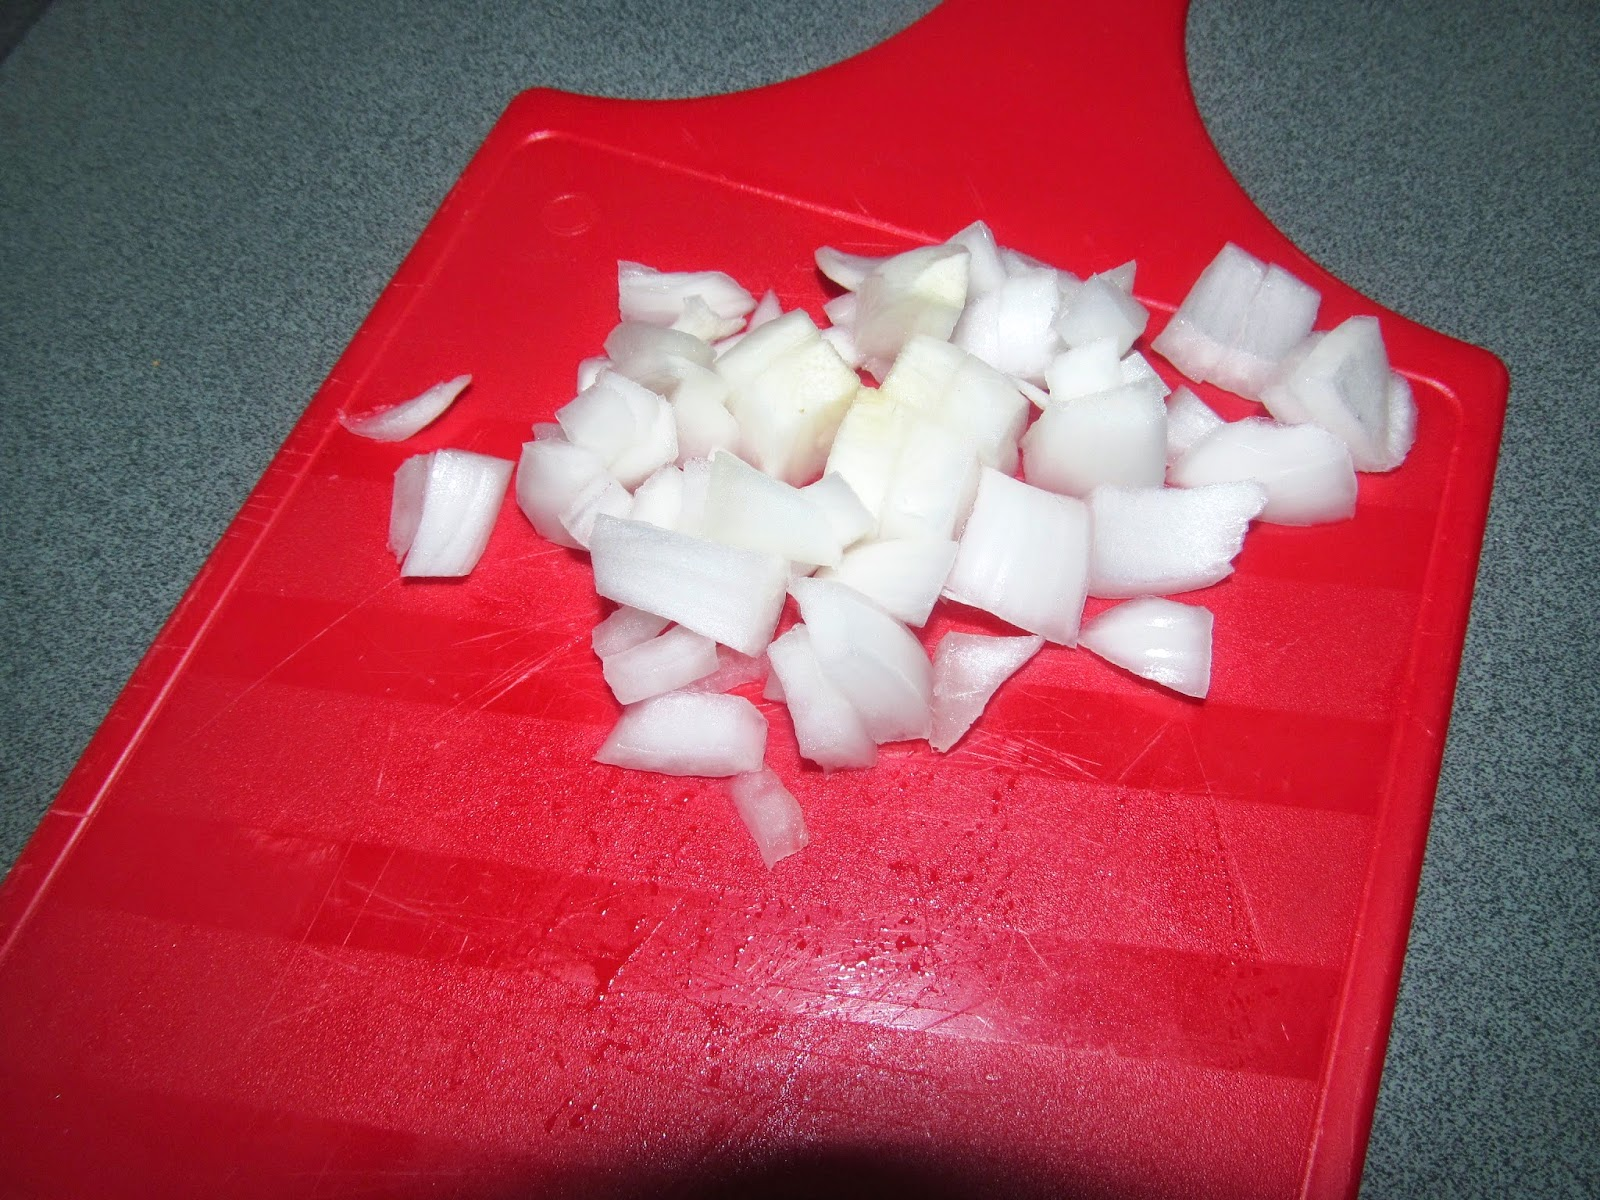 diced sweet onions